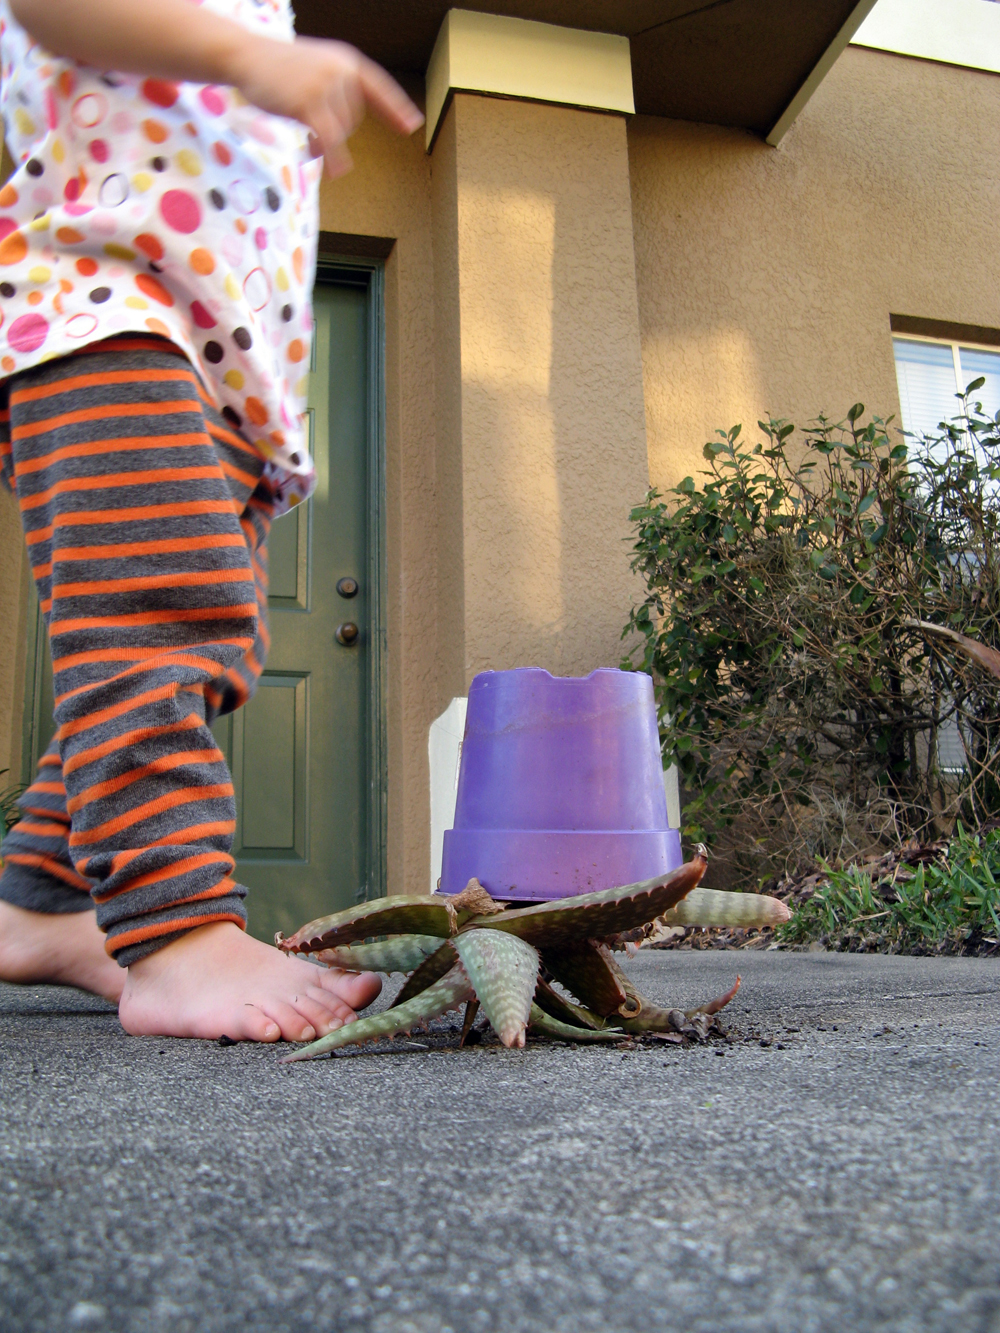 Toddler standing next to upside-down potted plant